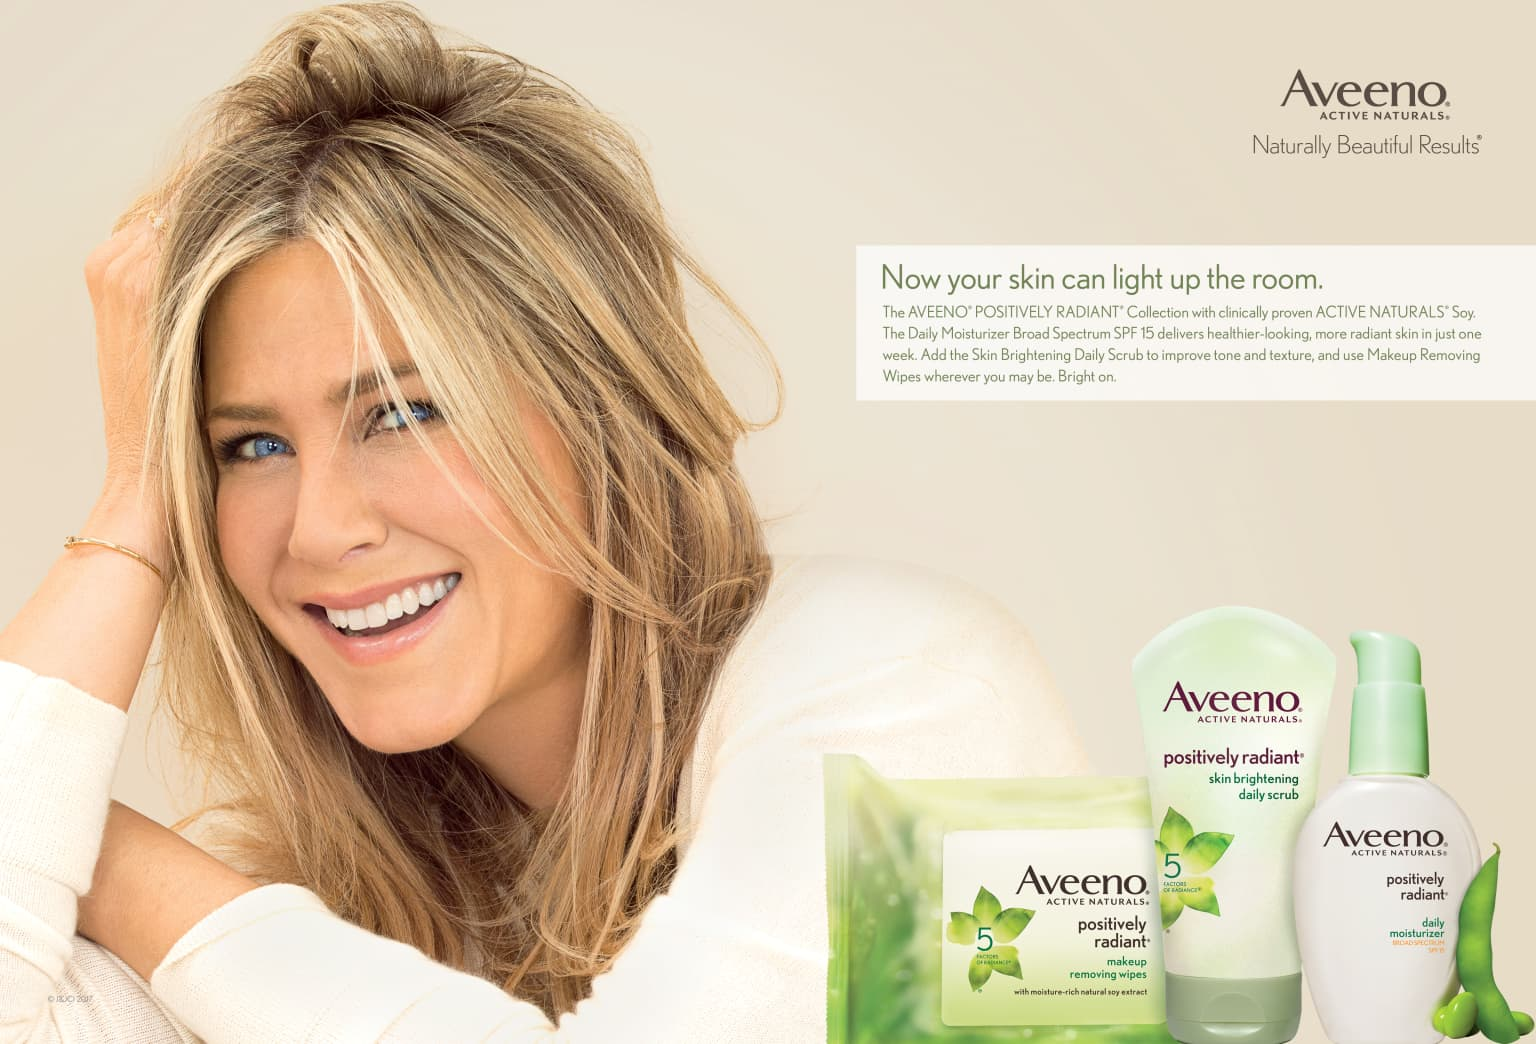 AVEENO POSITIVELY RADIANT REFRESH (SKINCARE)